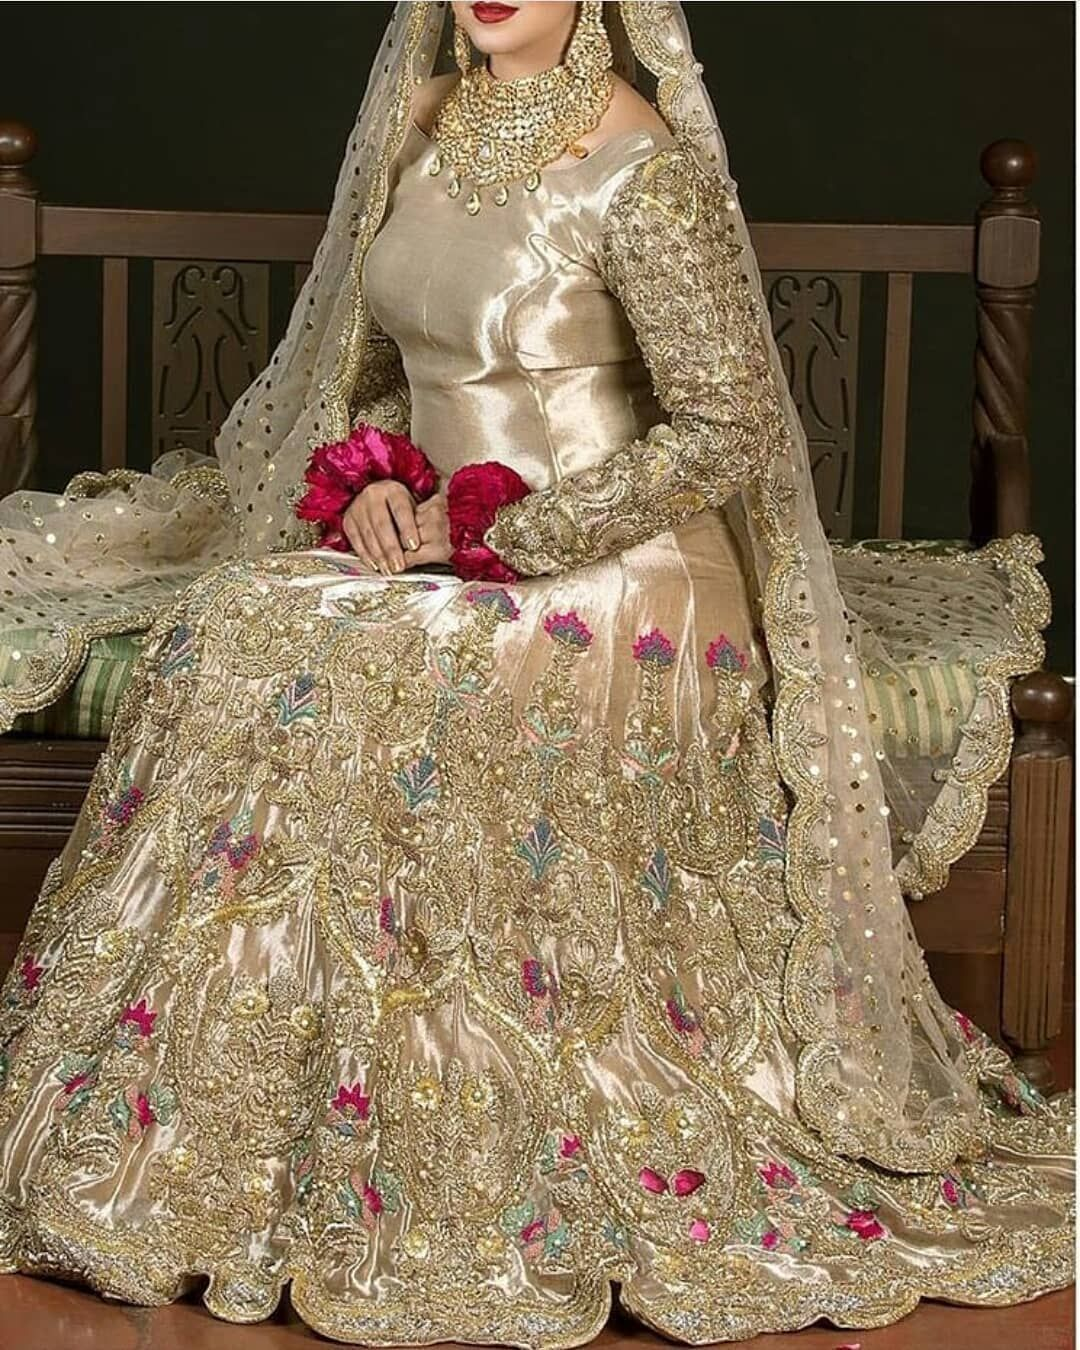 374 Likes 2 Comments Mk Bridals Mk Bridals On Instagram Taking Orders For Weddings In Janua Bridal Dresses Pakistan Bridal Dresses Asian Bridal Dresses